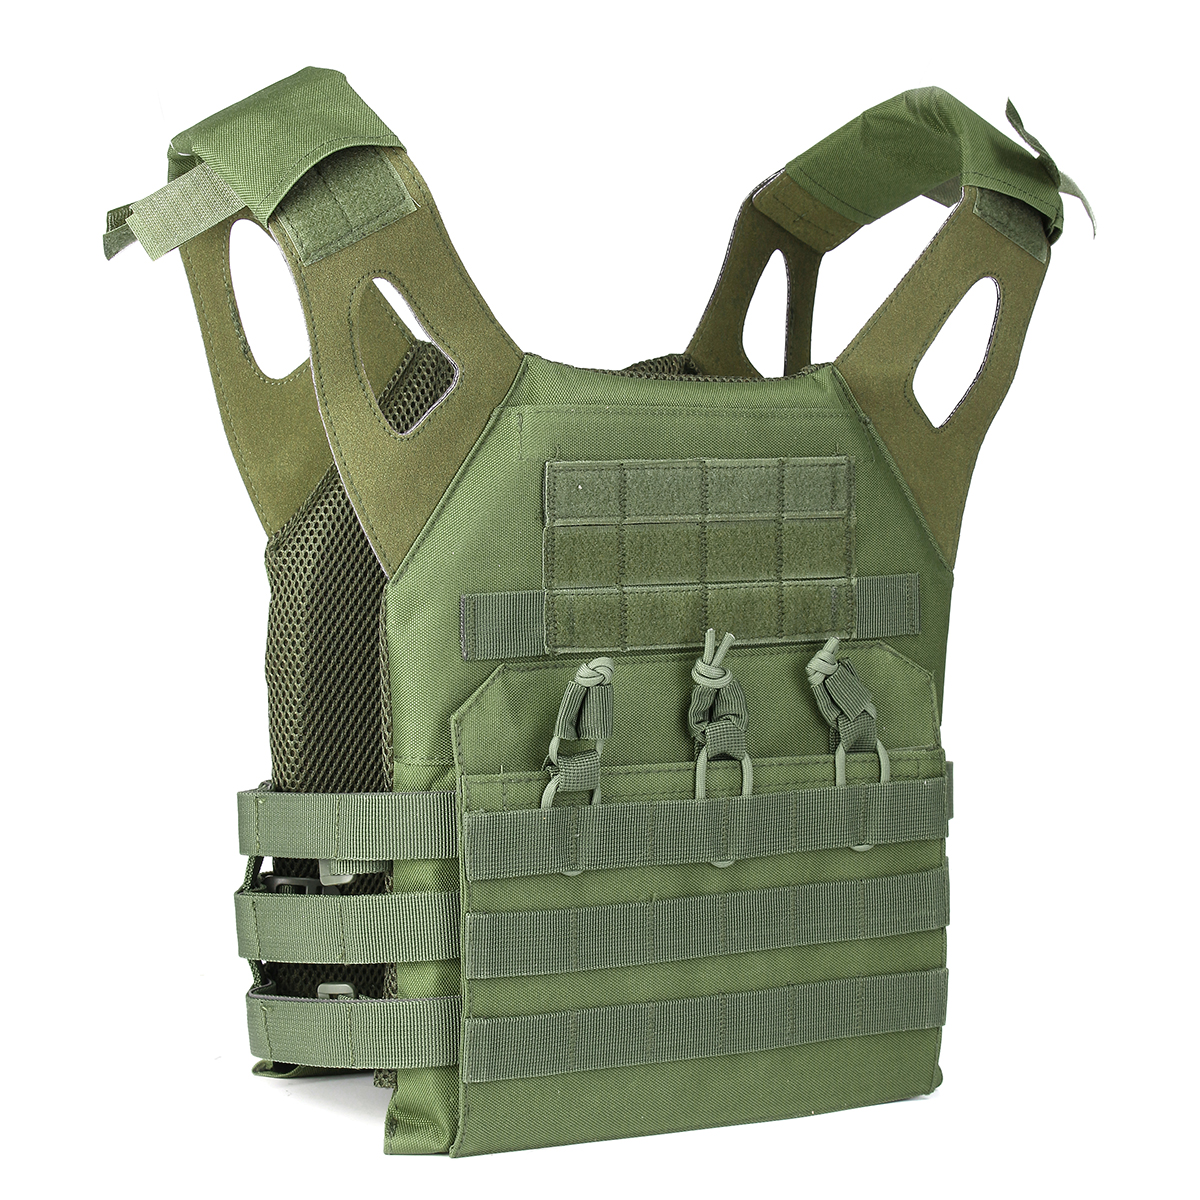 Lightweight MOLLE System Army Armor Carrier Plate Vest Pouches 1000D Waterproof Oxford Cloth